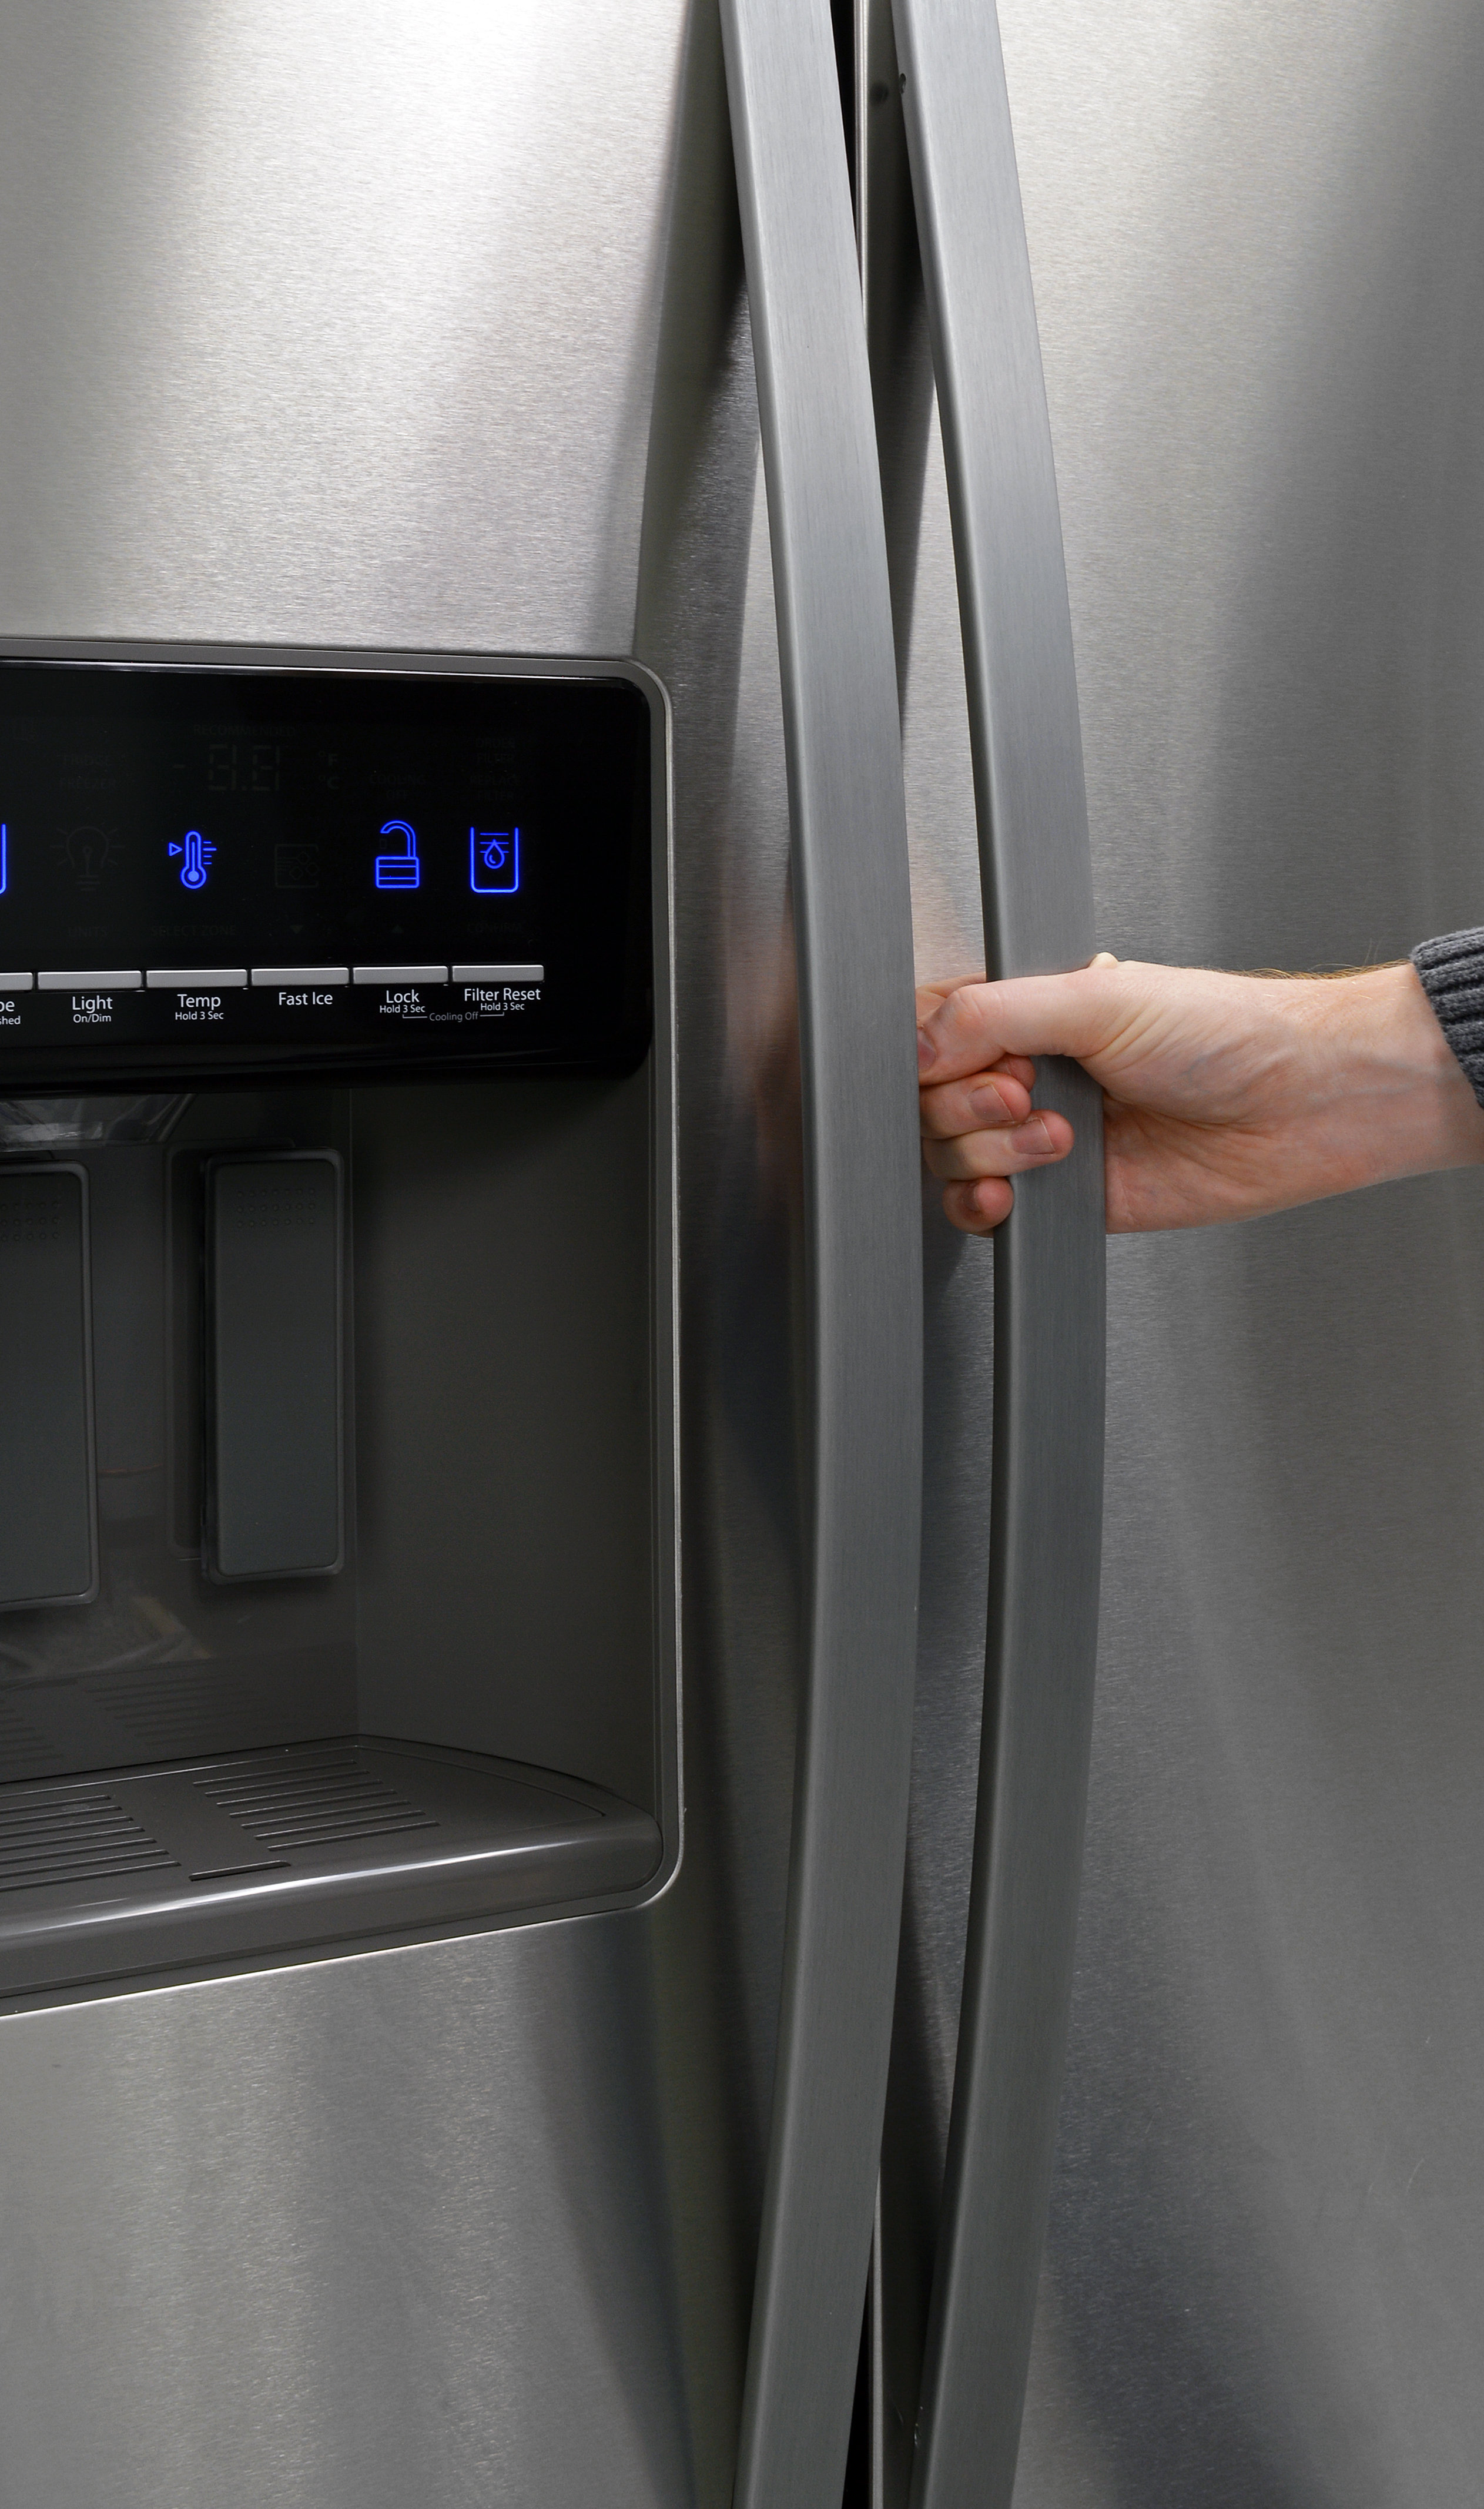 The Whirlpool WRS571CIDM's long, tapering handles look and feel great.